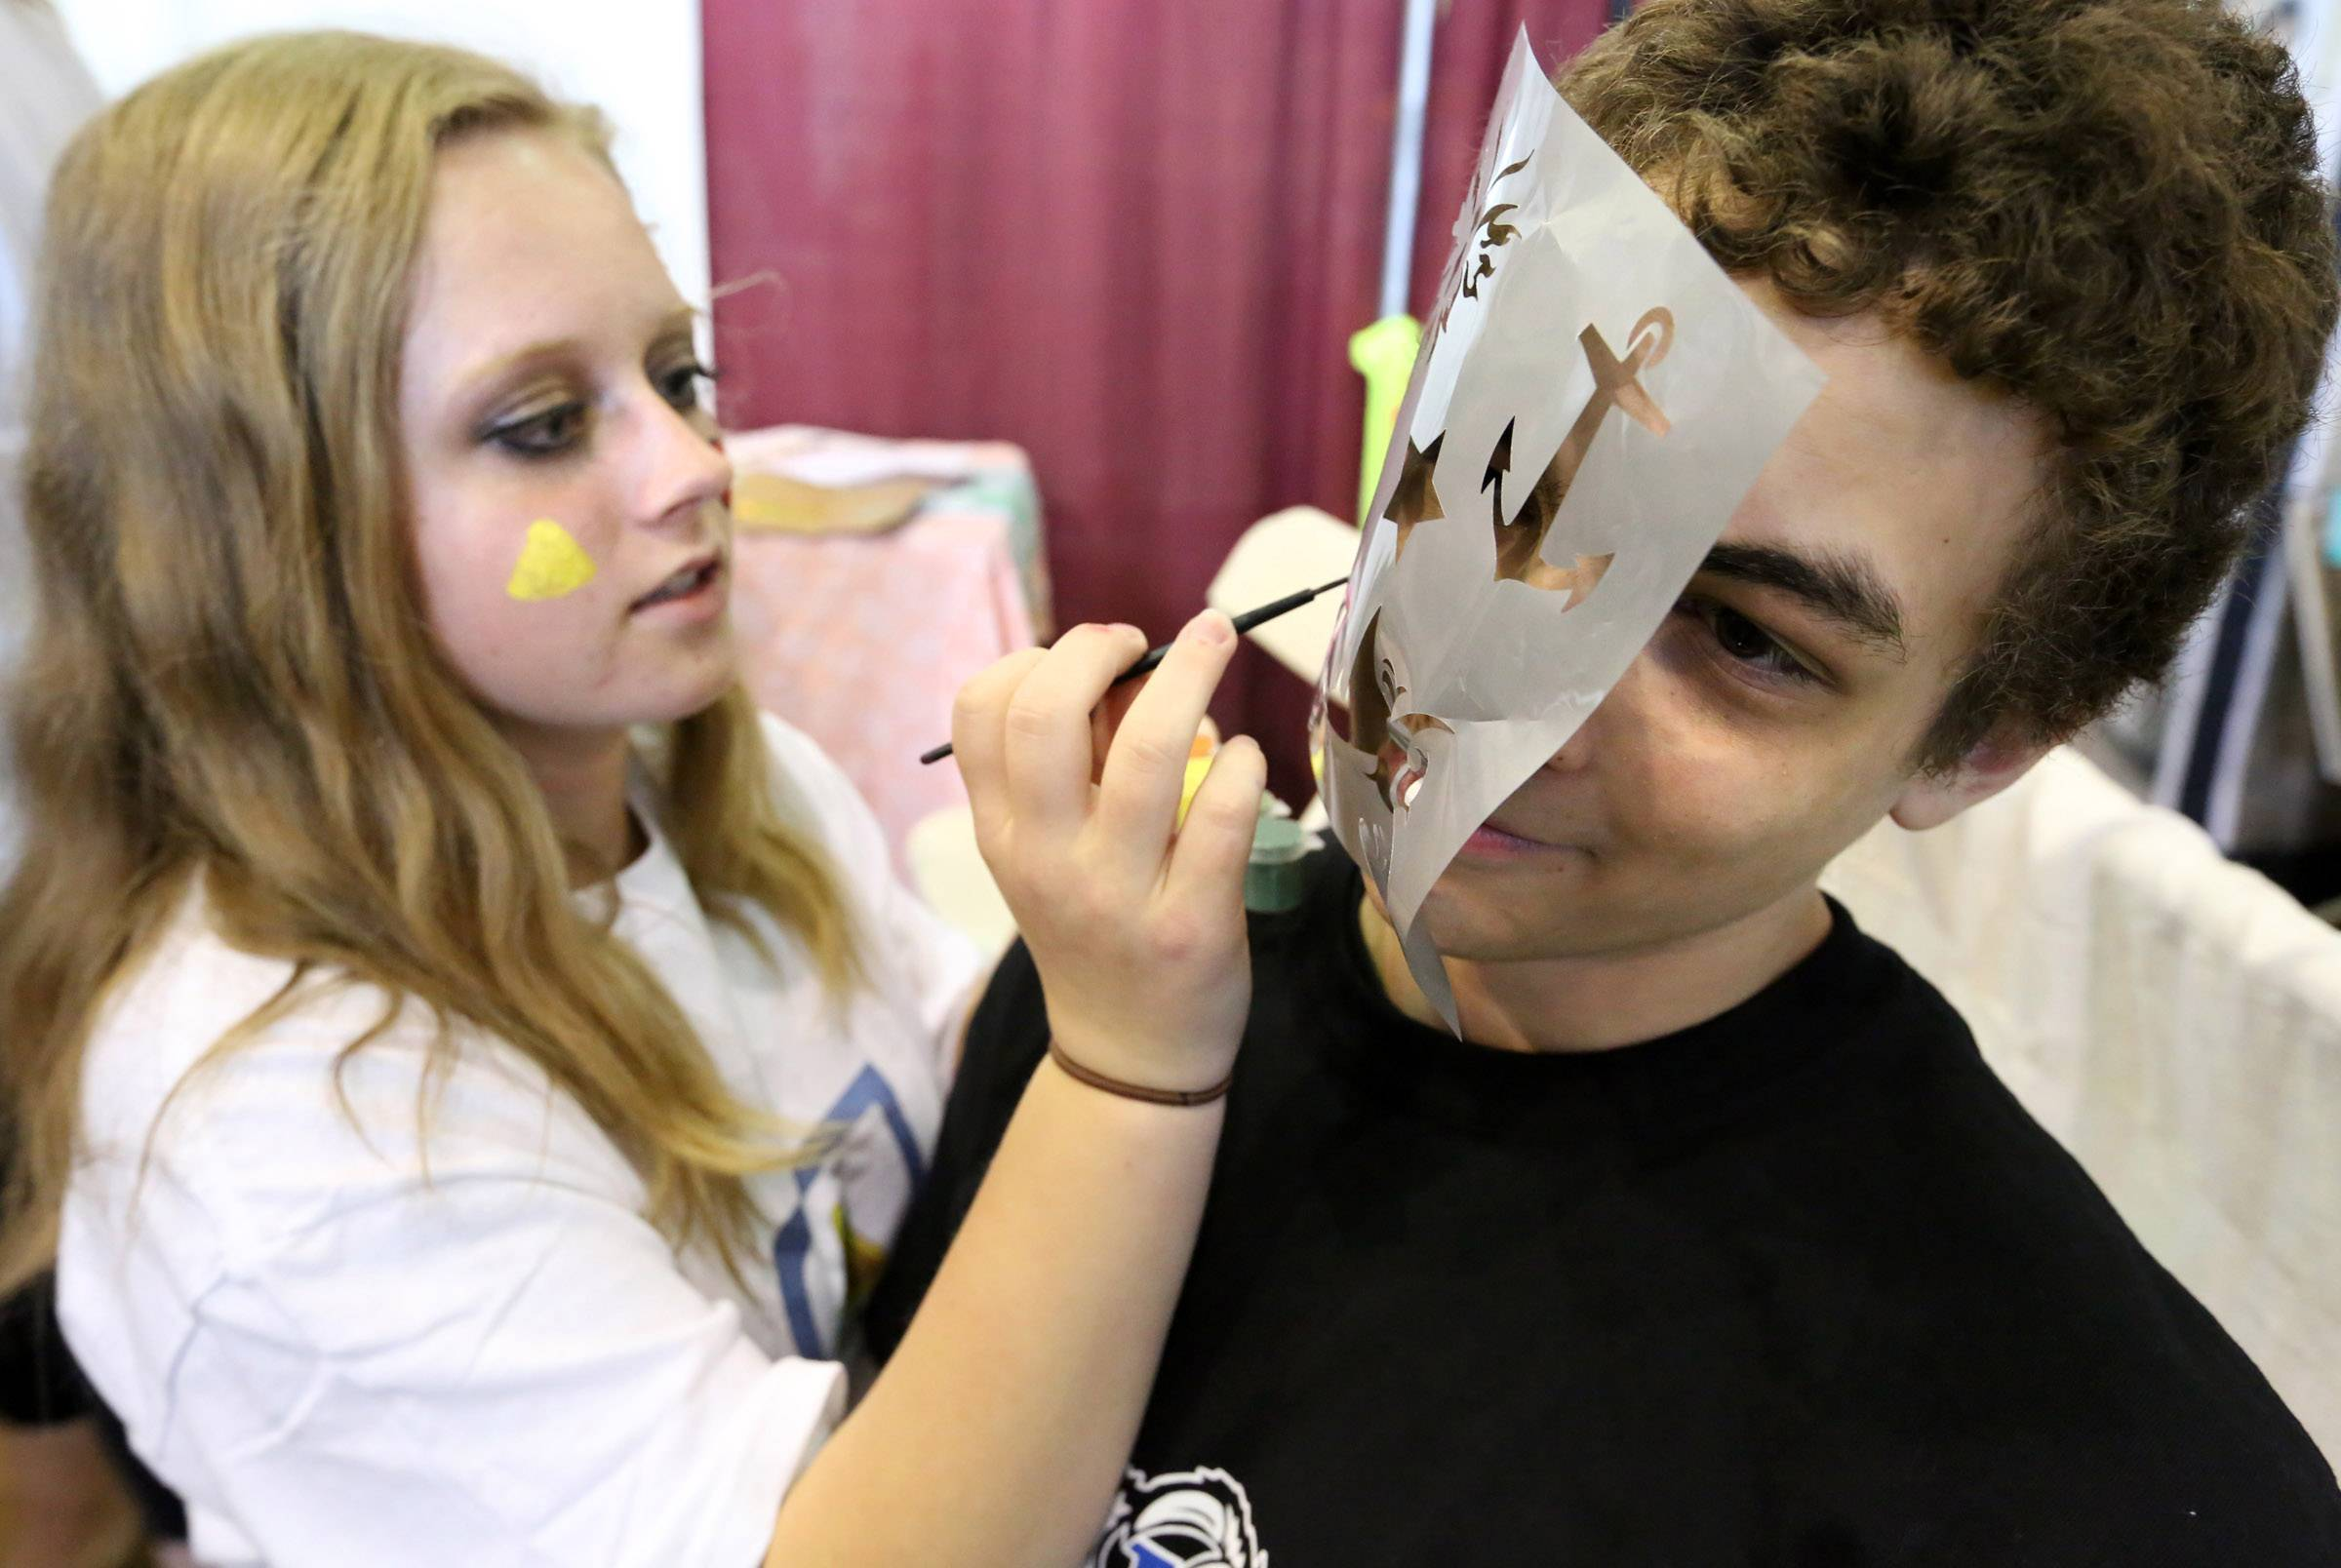 Brian Borcean, 16, has his face painted by Suzanne Zborowski, 16, both of Lake Zurich, using a stencil at Be Safe Driving School's booth at Lake Zurich's annual Business and Community Showcase on Saturday at Lake Zurich High School. Zborowski is a graduate of the driving school.